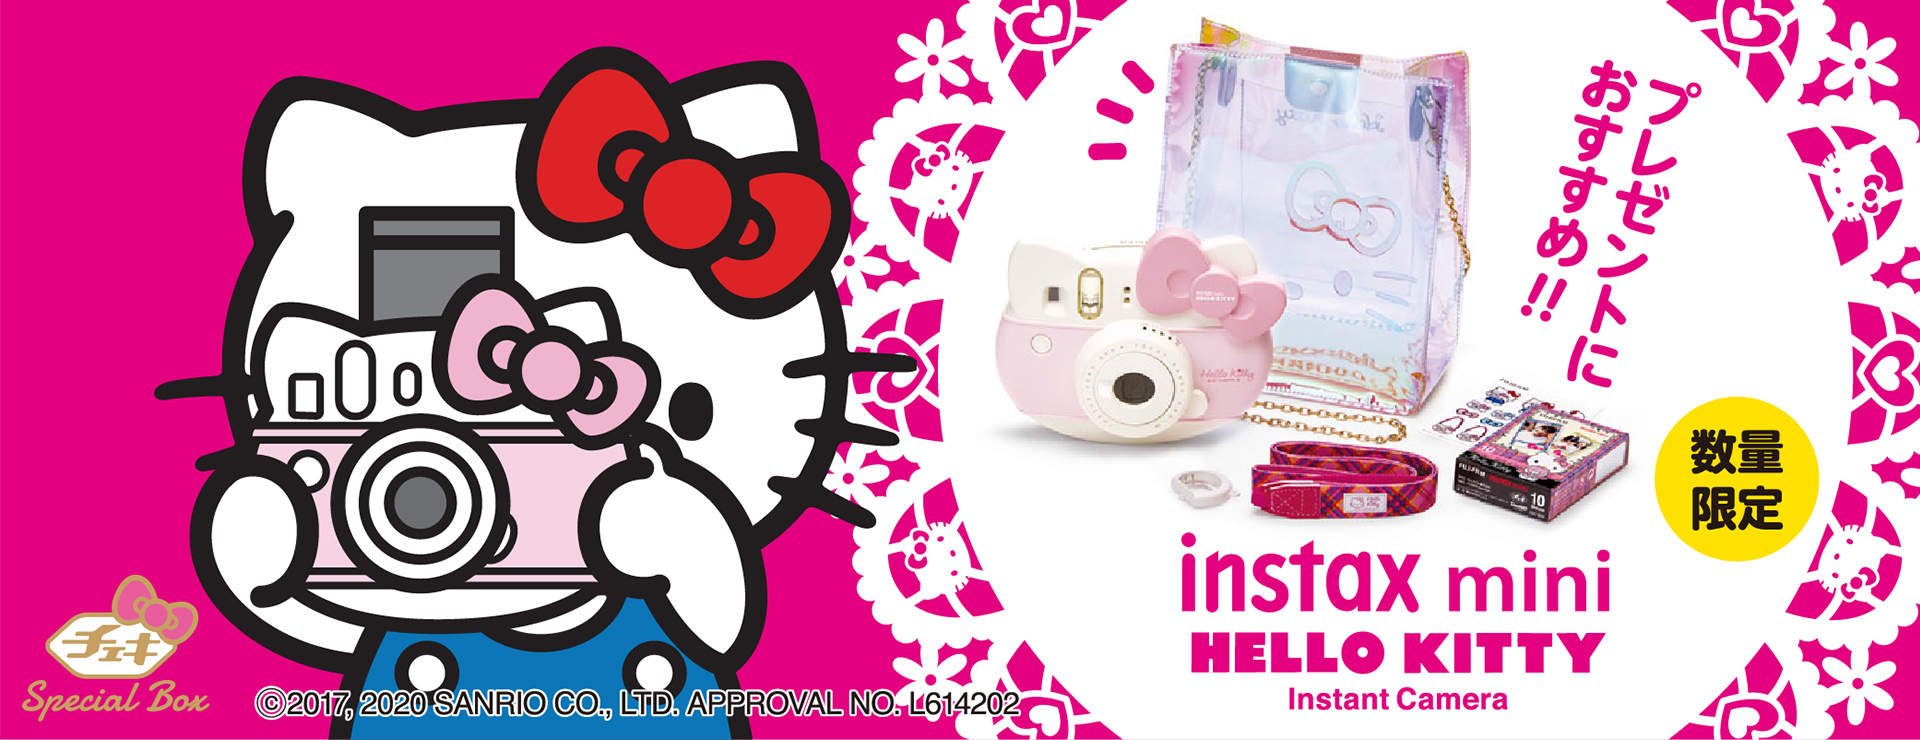 HELLO KITTYチェキ